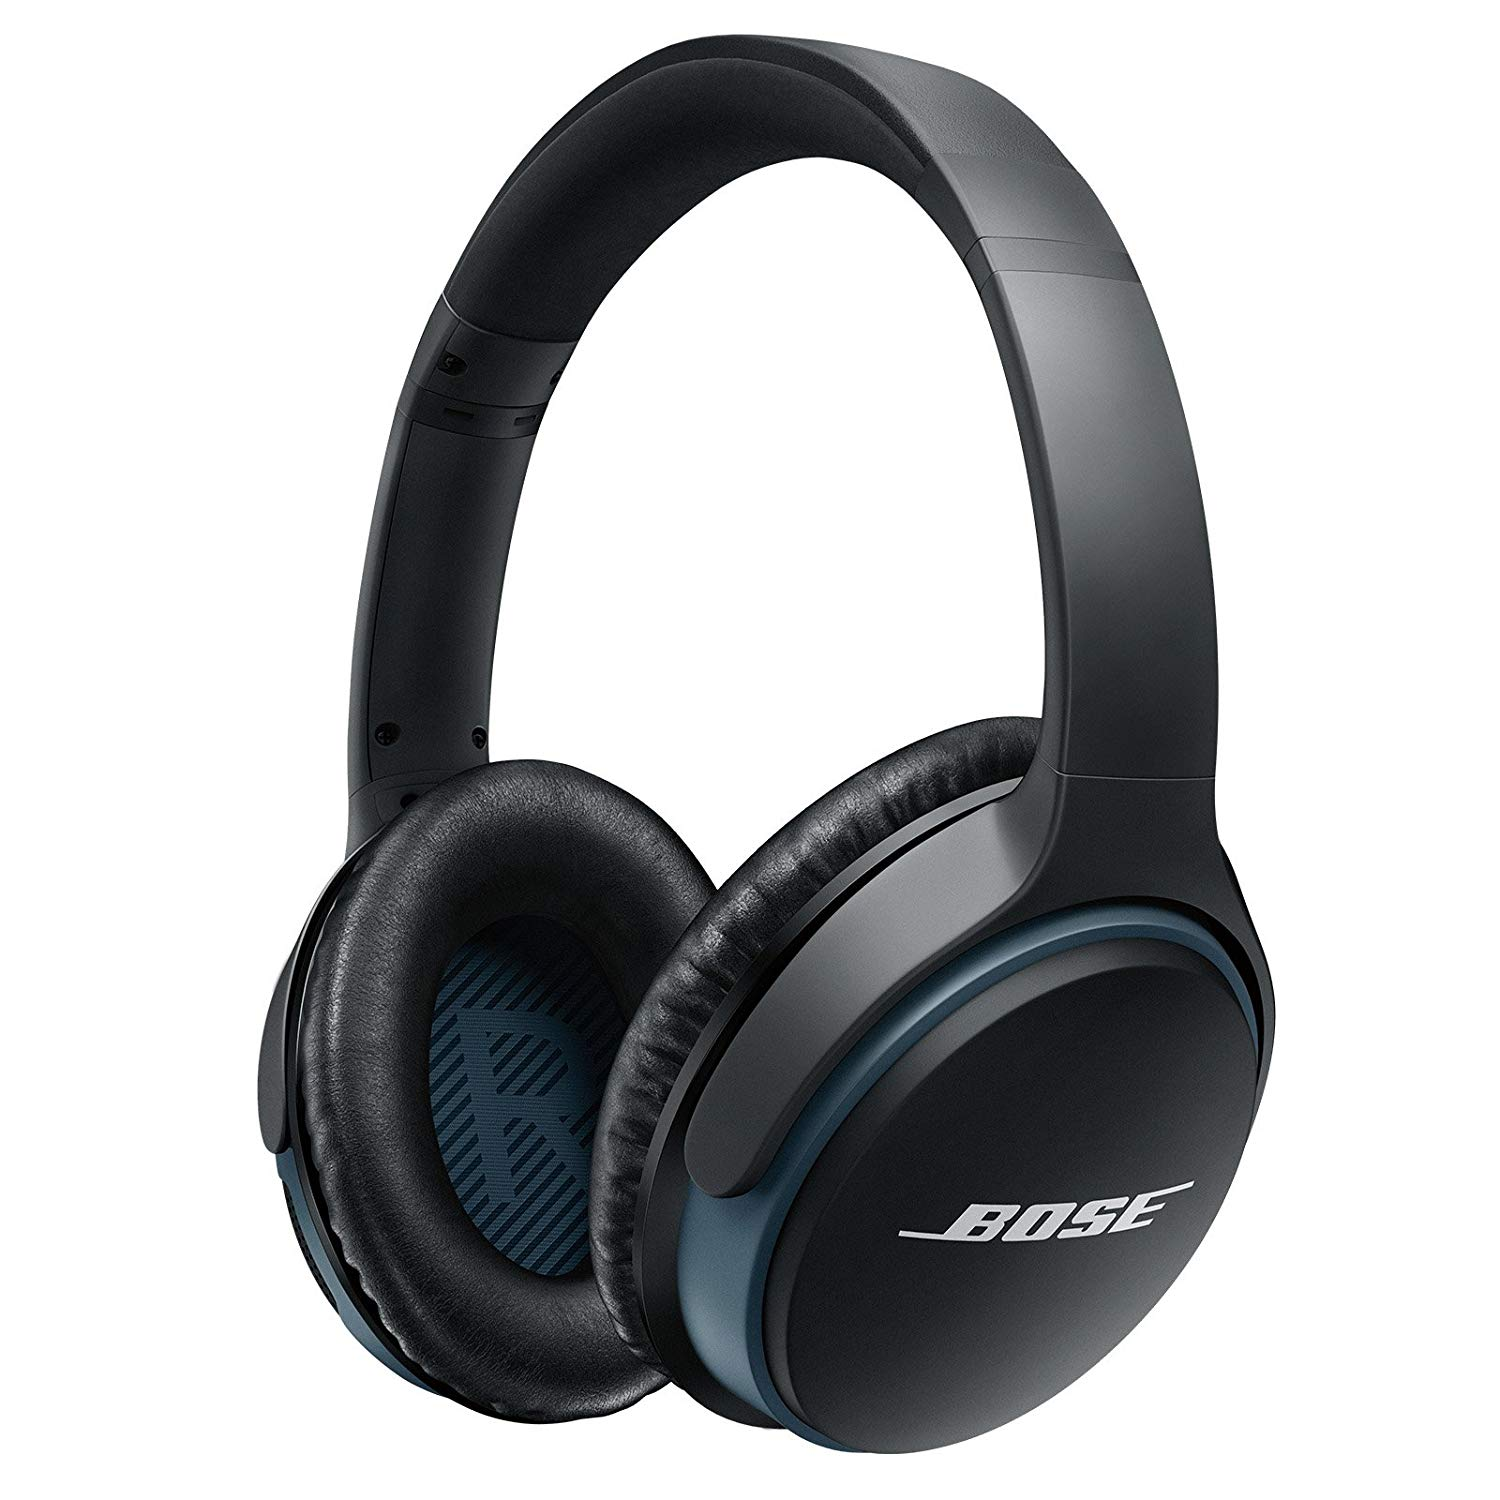 bose headphones black friday and cyber monday deals